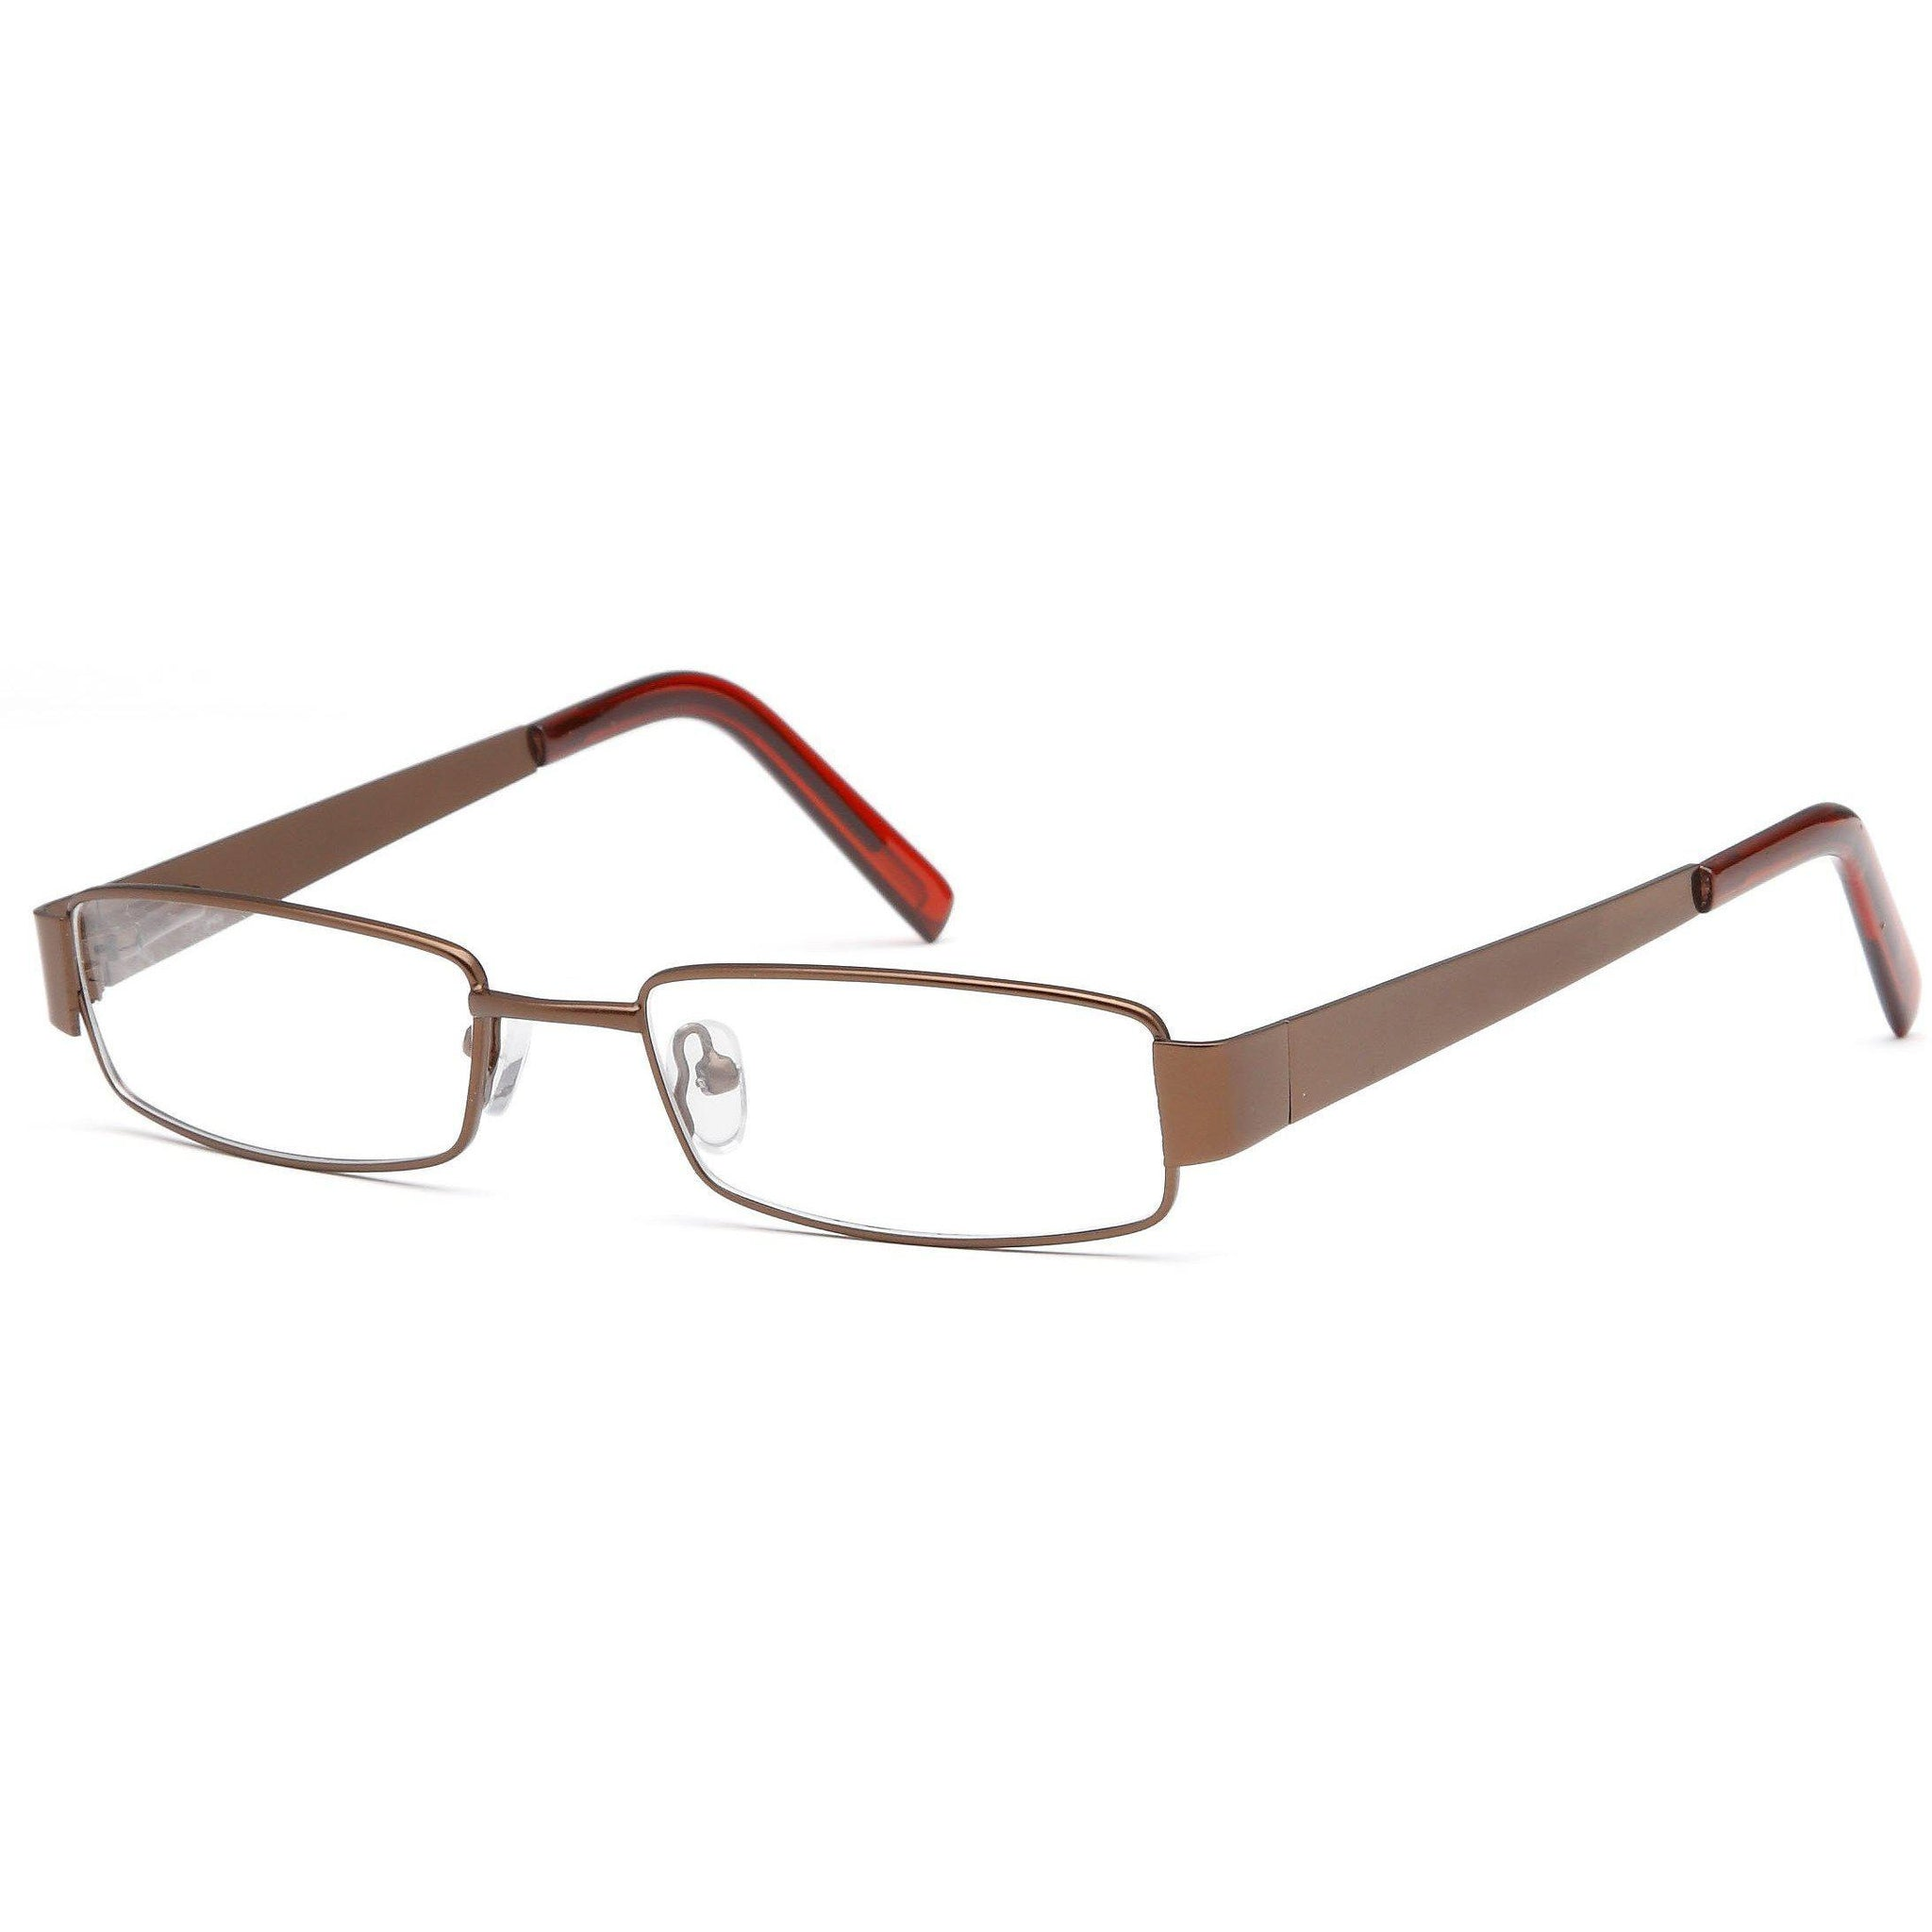 Appletree Prescription Glasses PT 87 Eyeglasses Frame